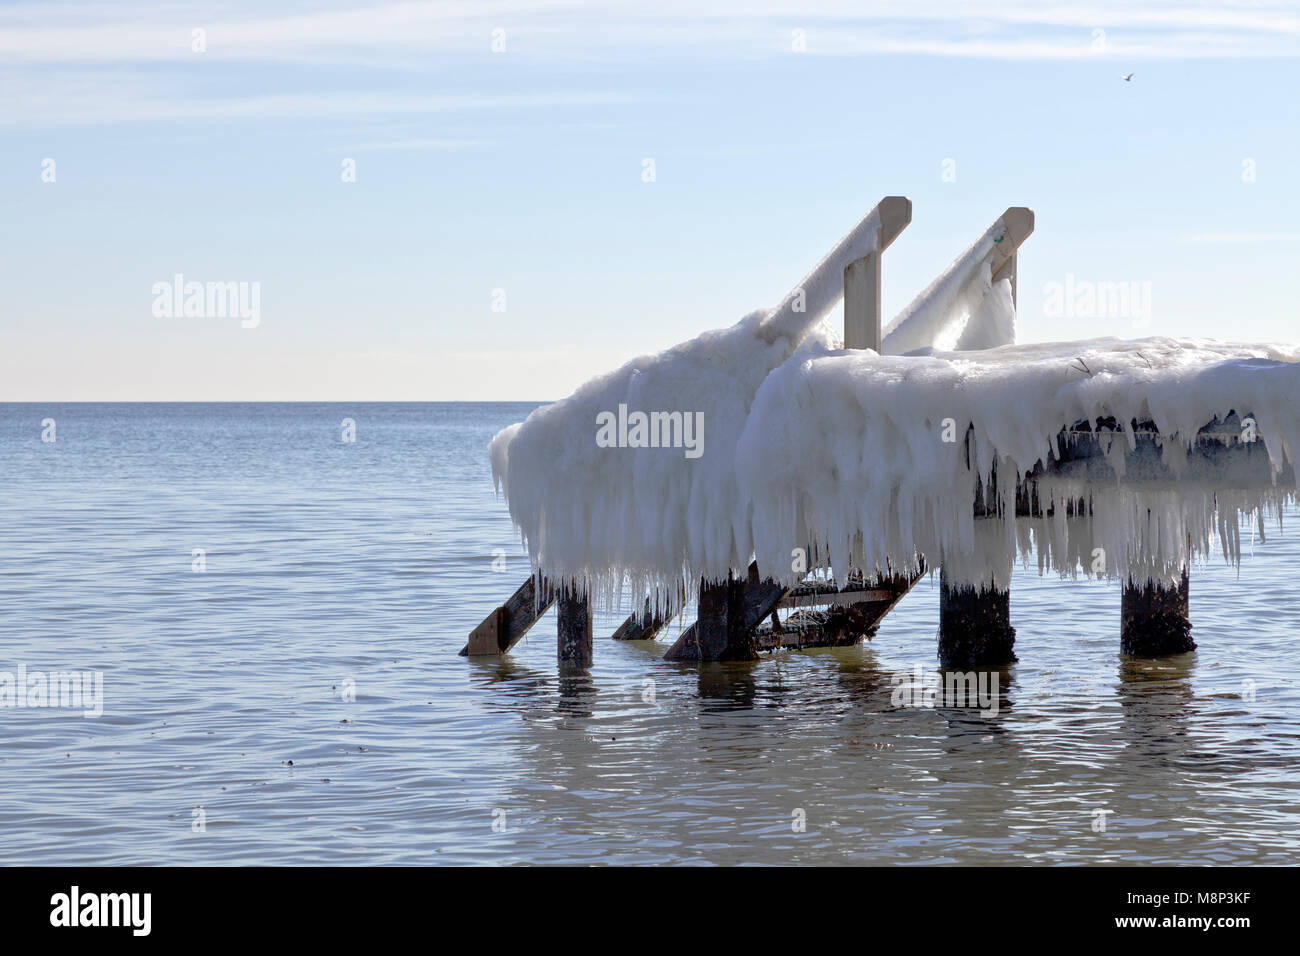 Ice formations and icicles on a bathing jetty at spring on a sunny day in the Sound / Oresund close to Copenhagen - Stock Image